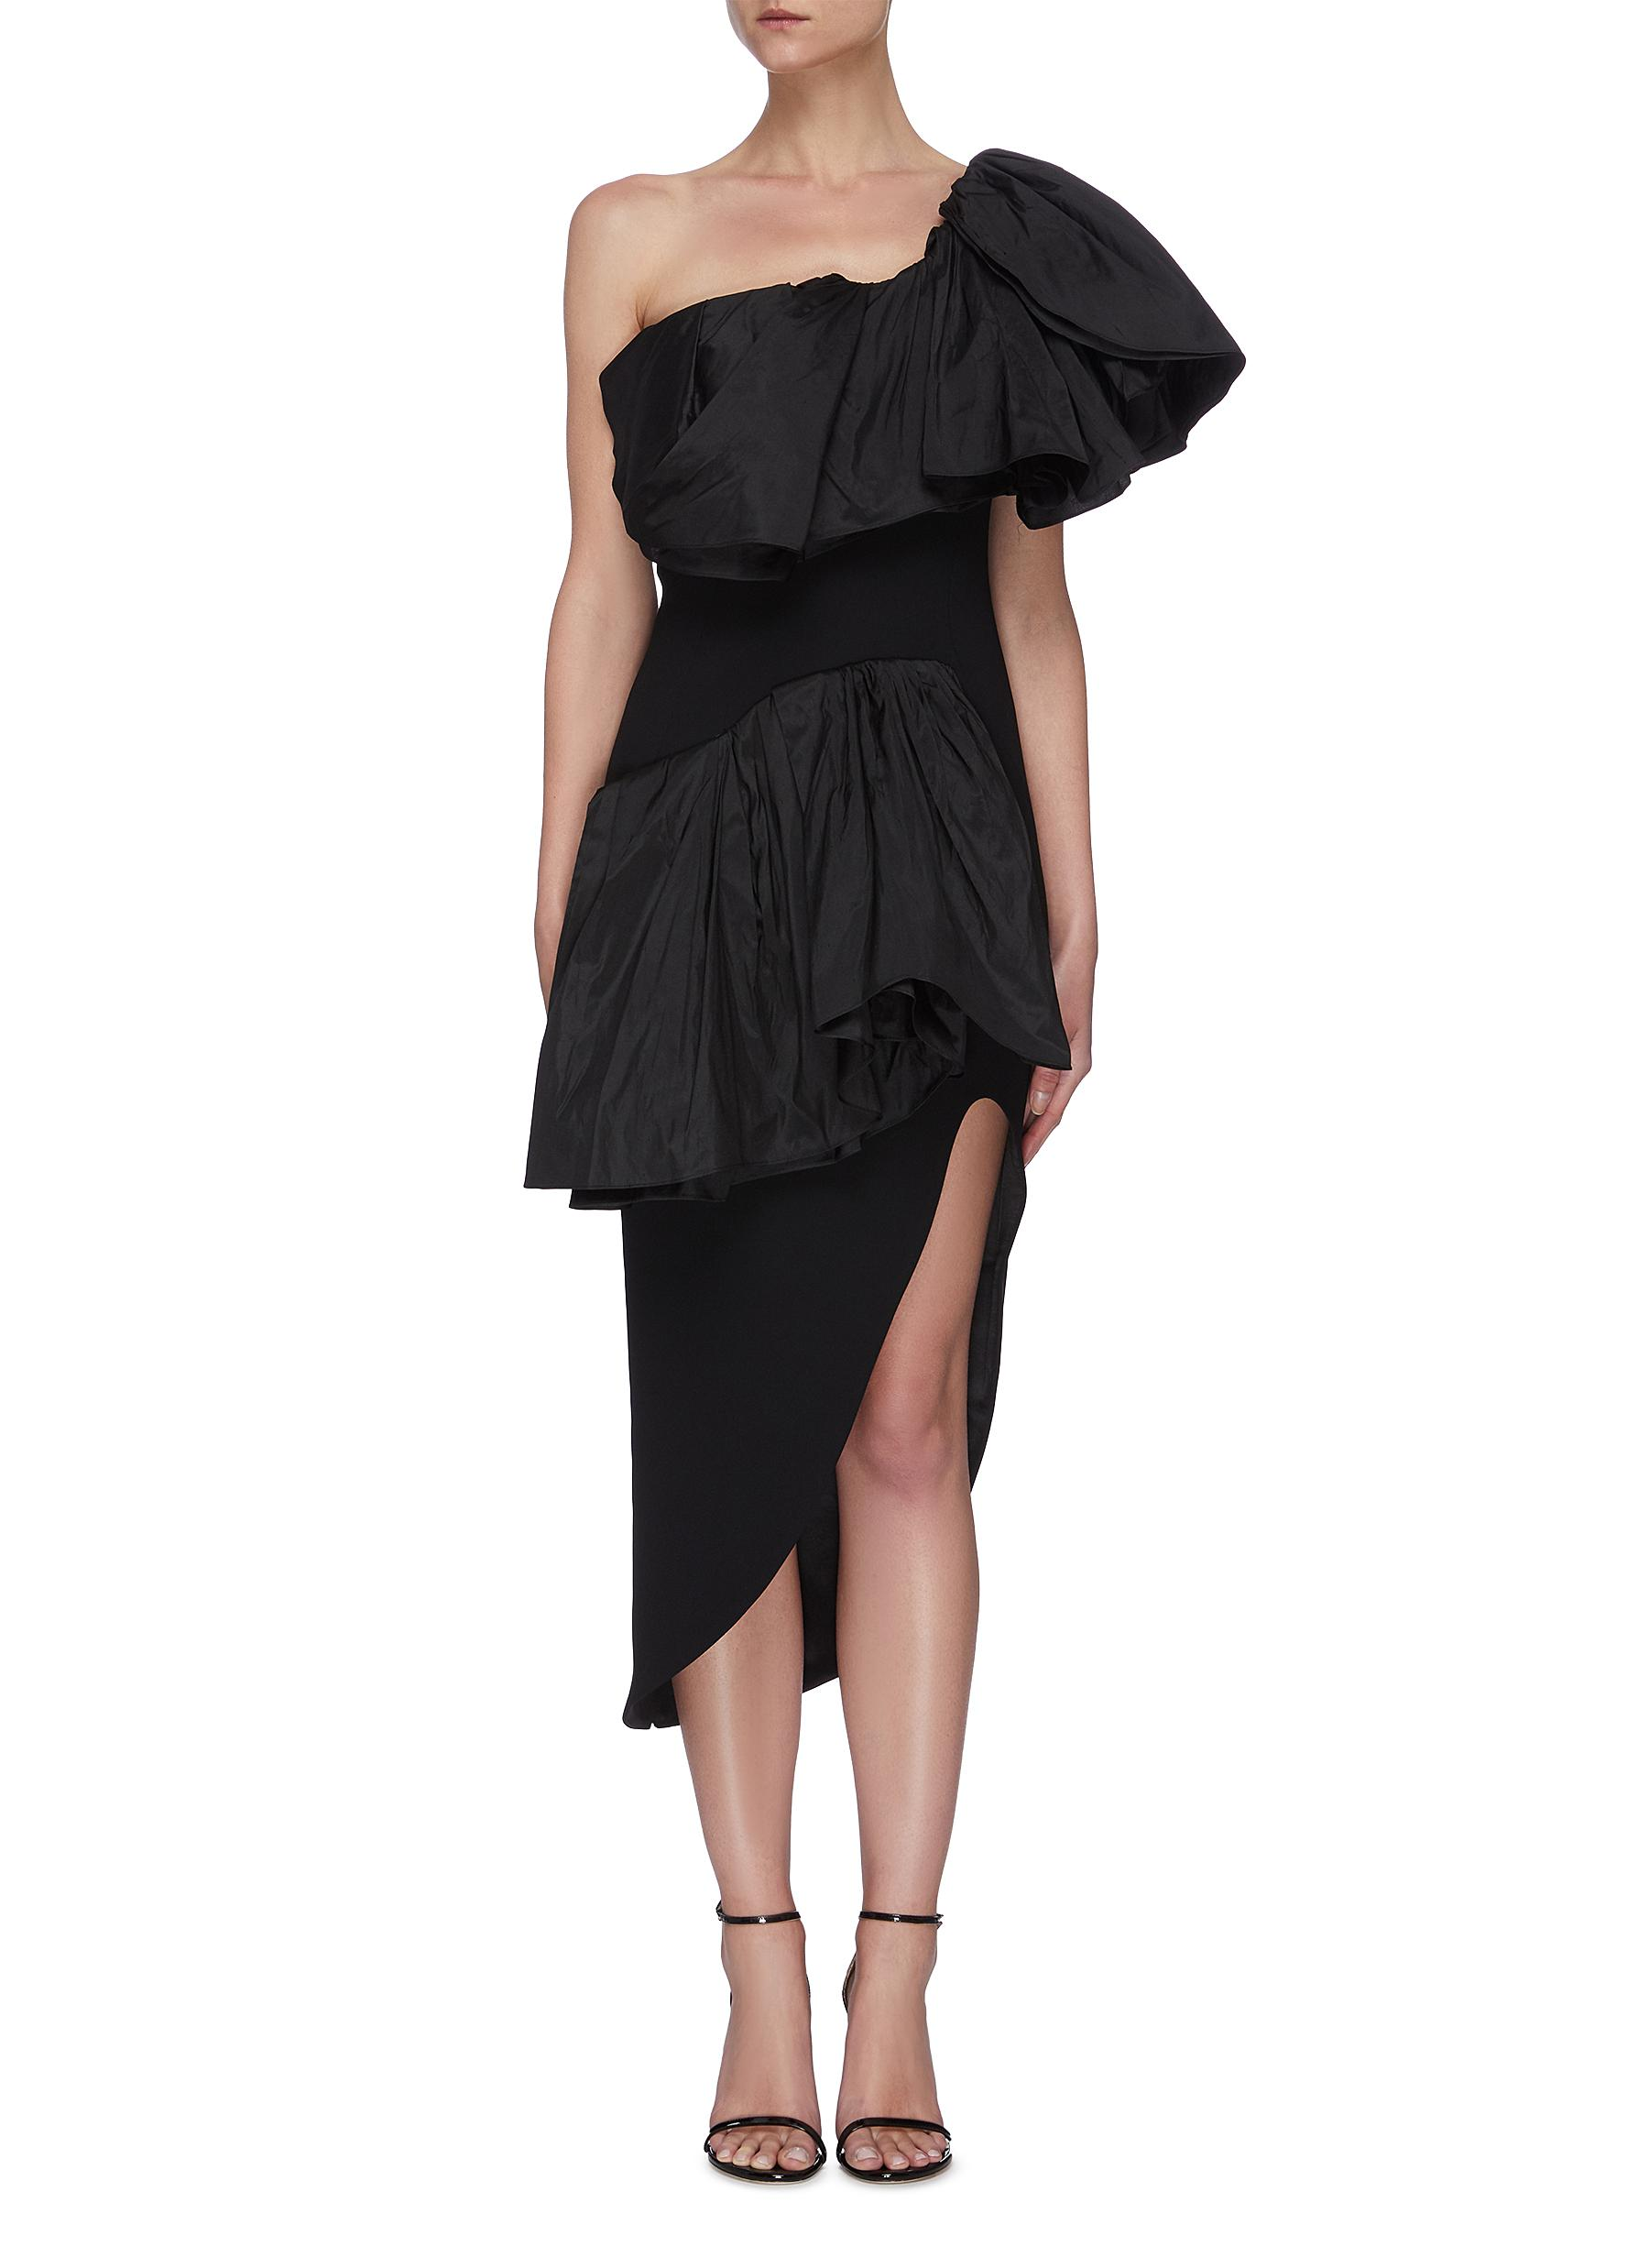 Buy Maticevski Dresses Attentive' ruffle dress